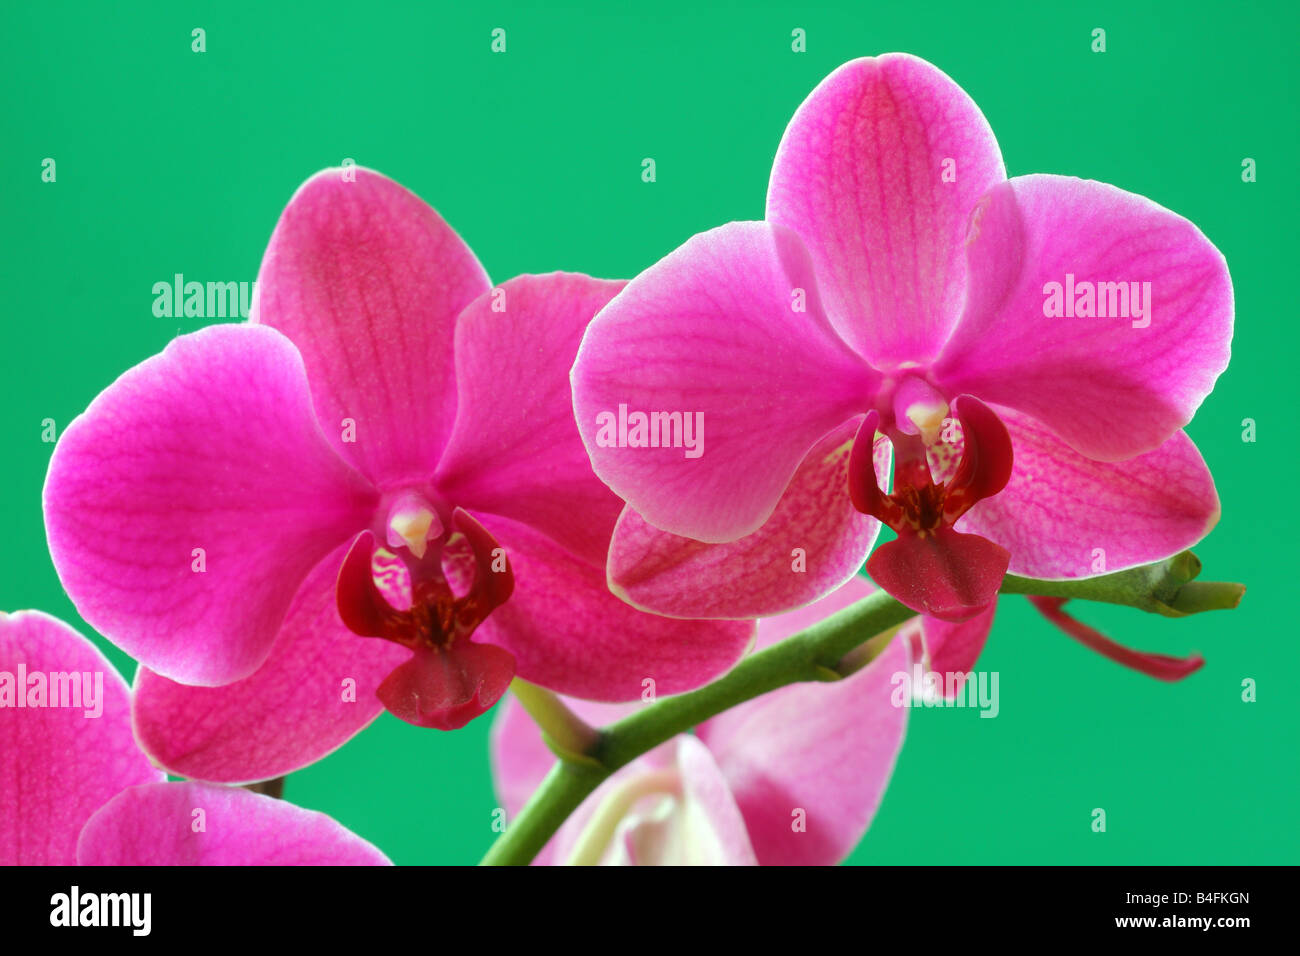 Pink orchid flowers close up Phalaenopsis - Stock Image